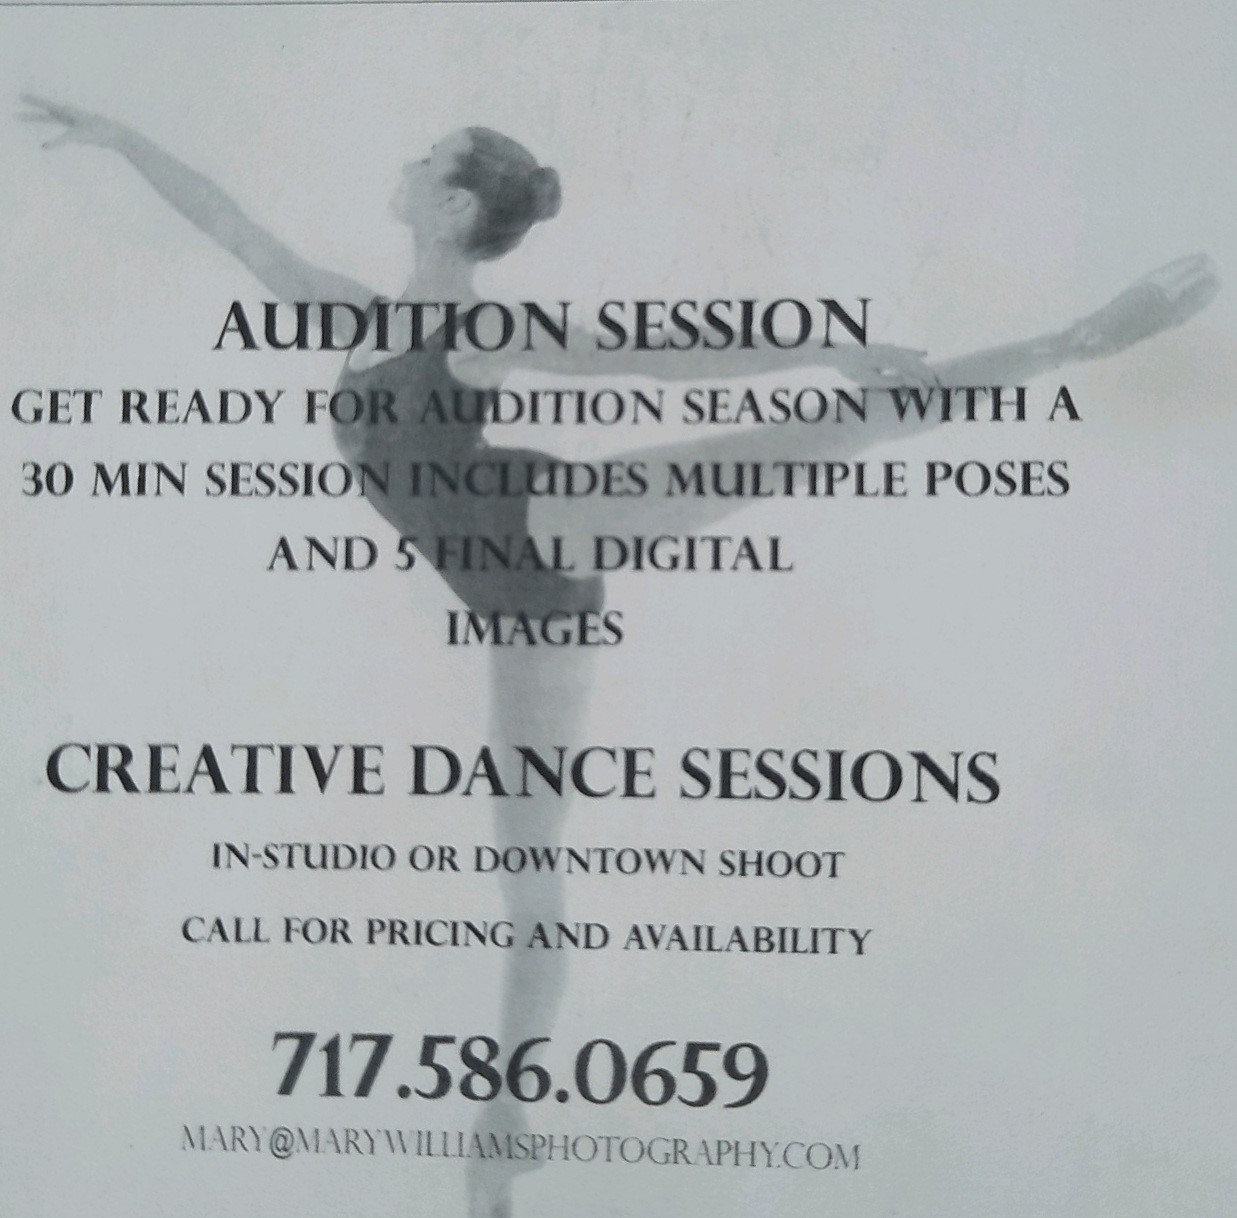 Audition Session